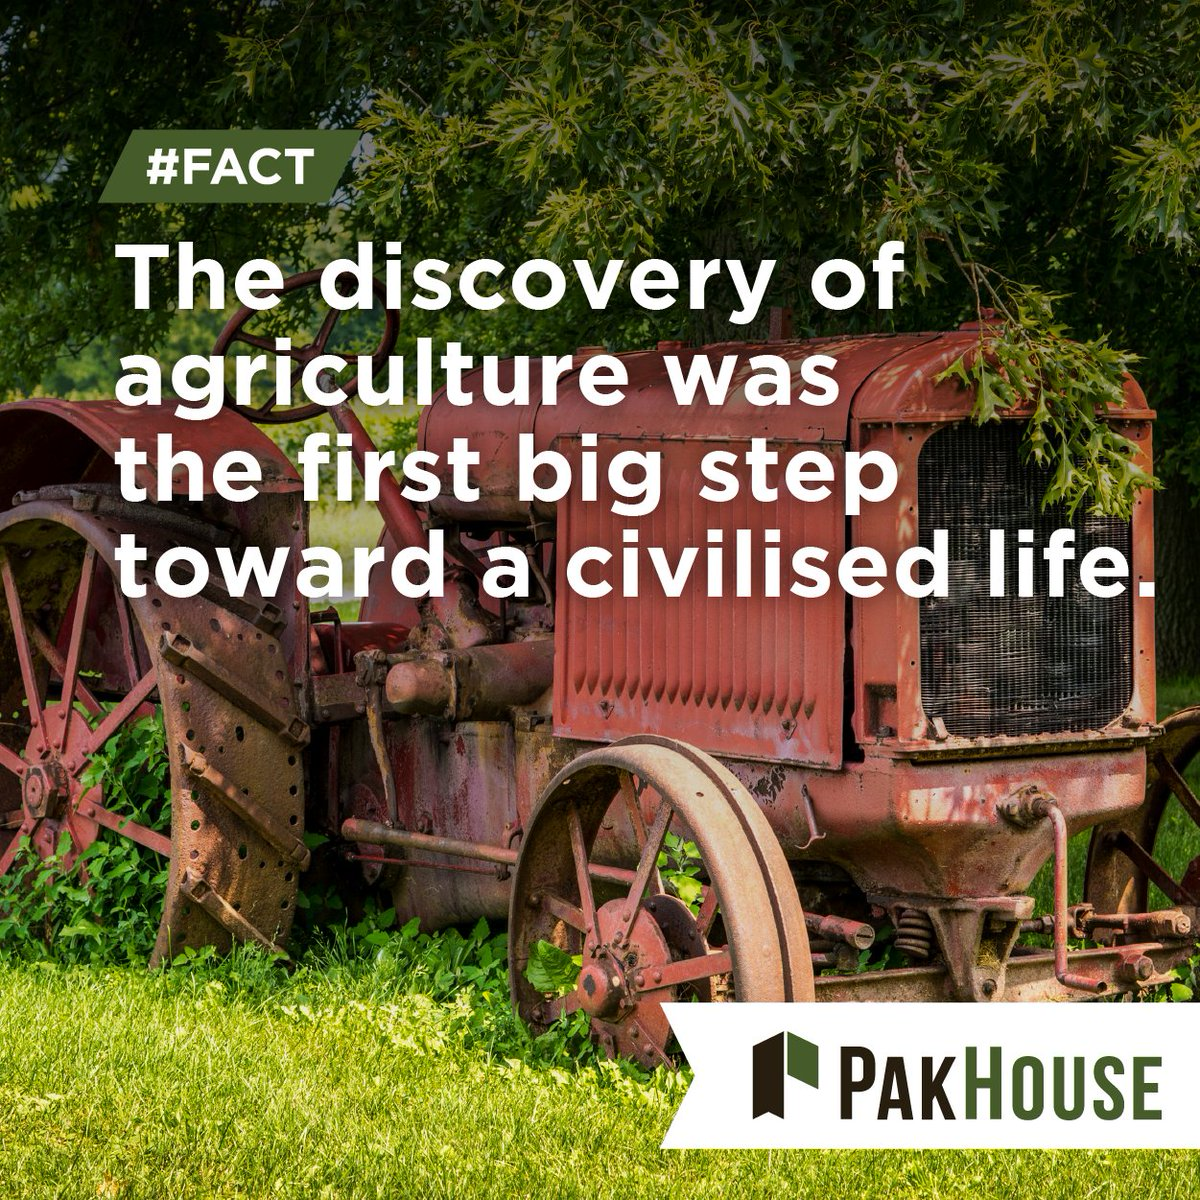 Pakhouse On Twitter Pakhouse Farming Agriculture Inspiration